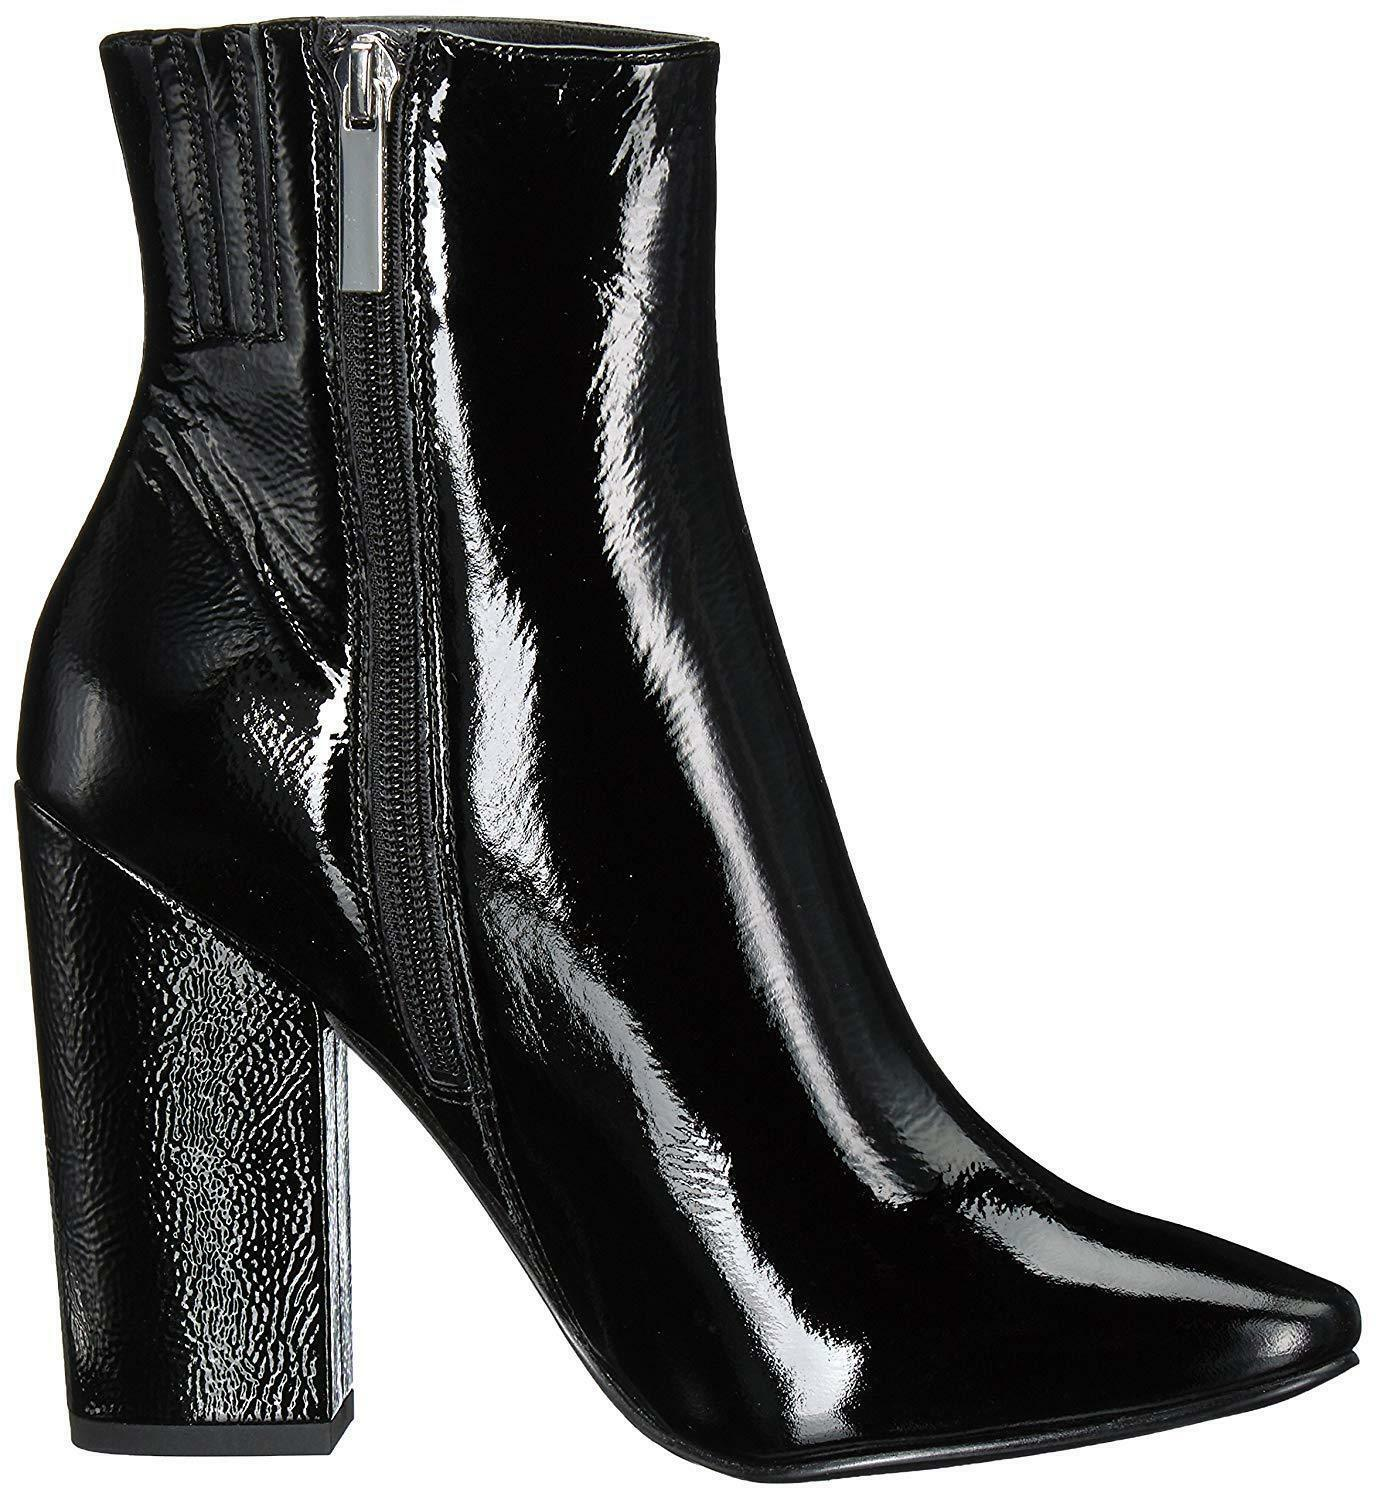 Kendall+ Kylie Haedyn 2 Patent Leather Boot black size 7.5